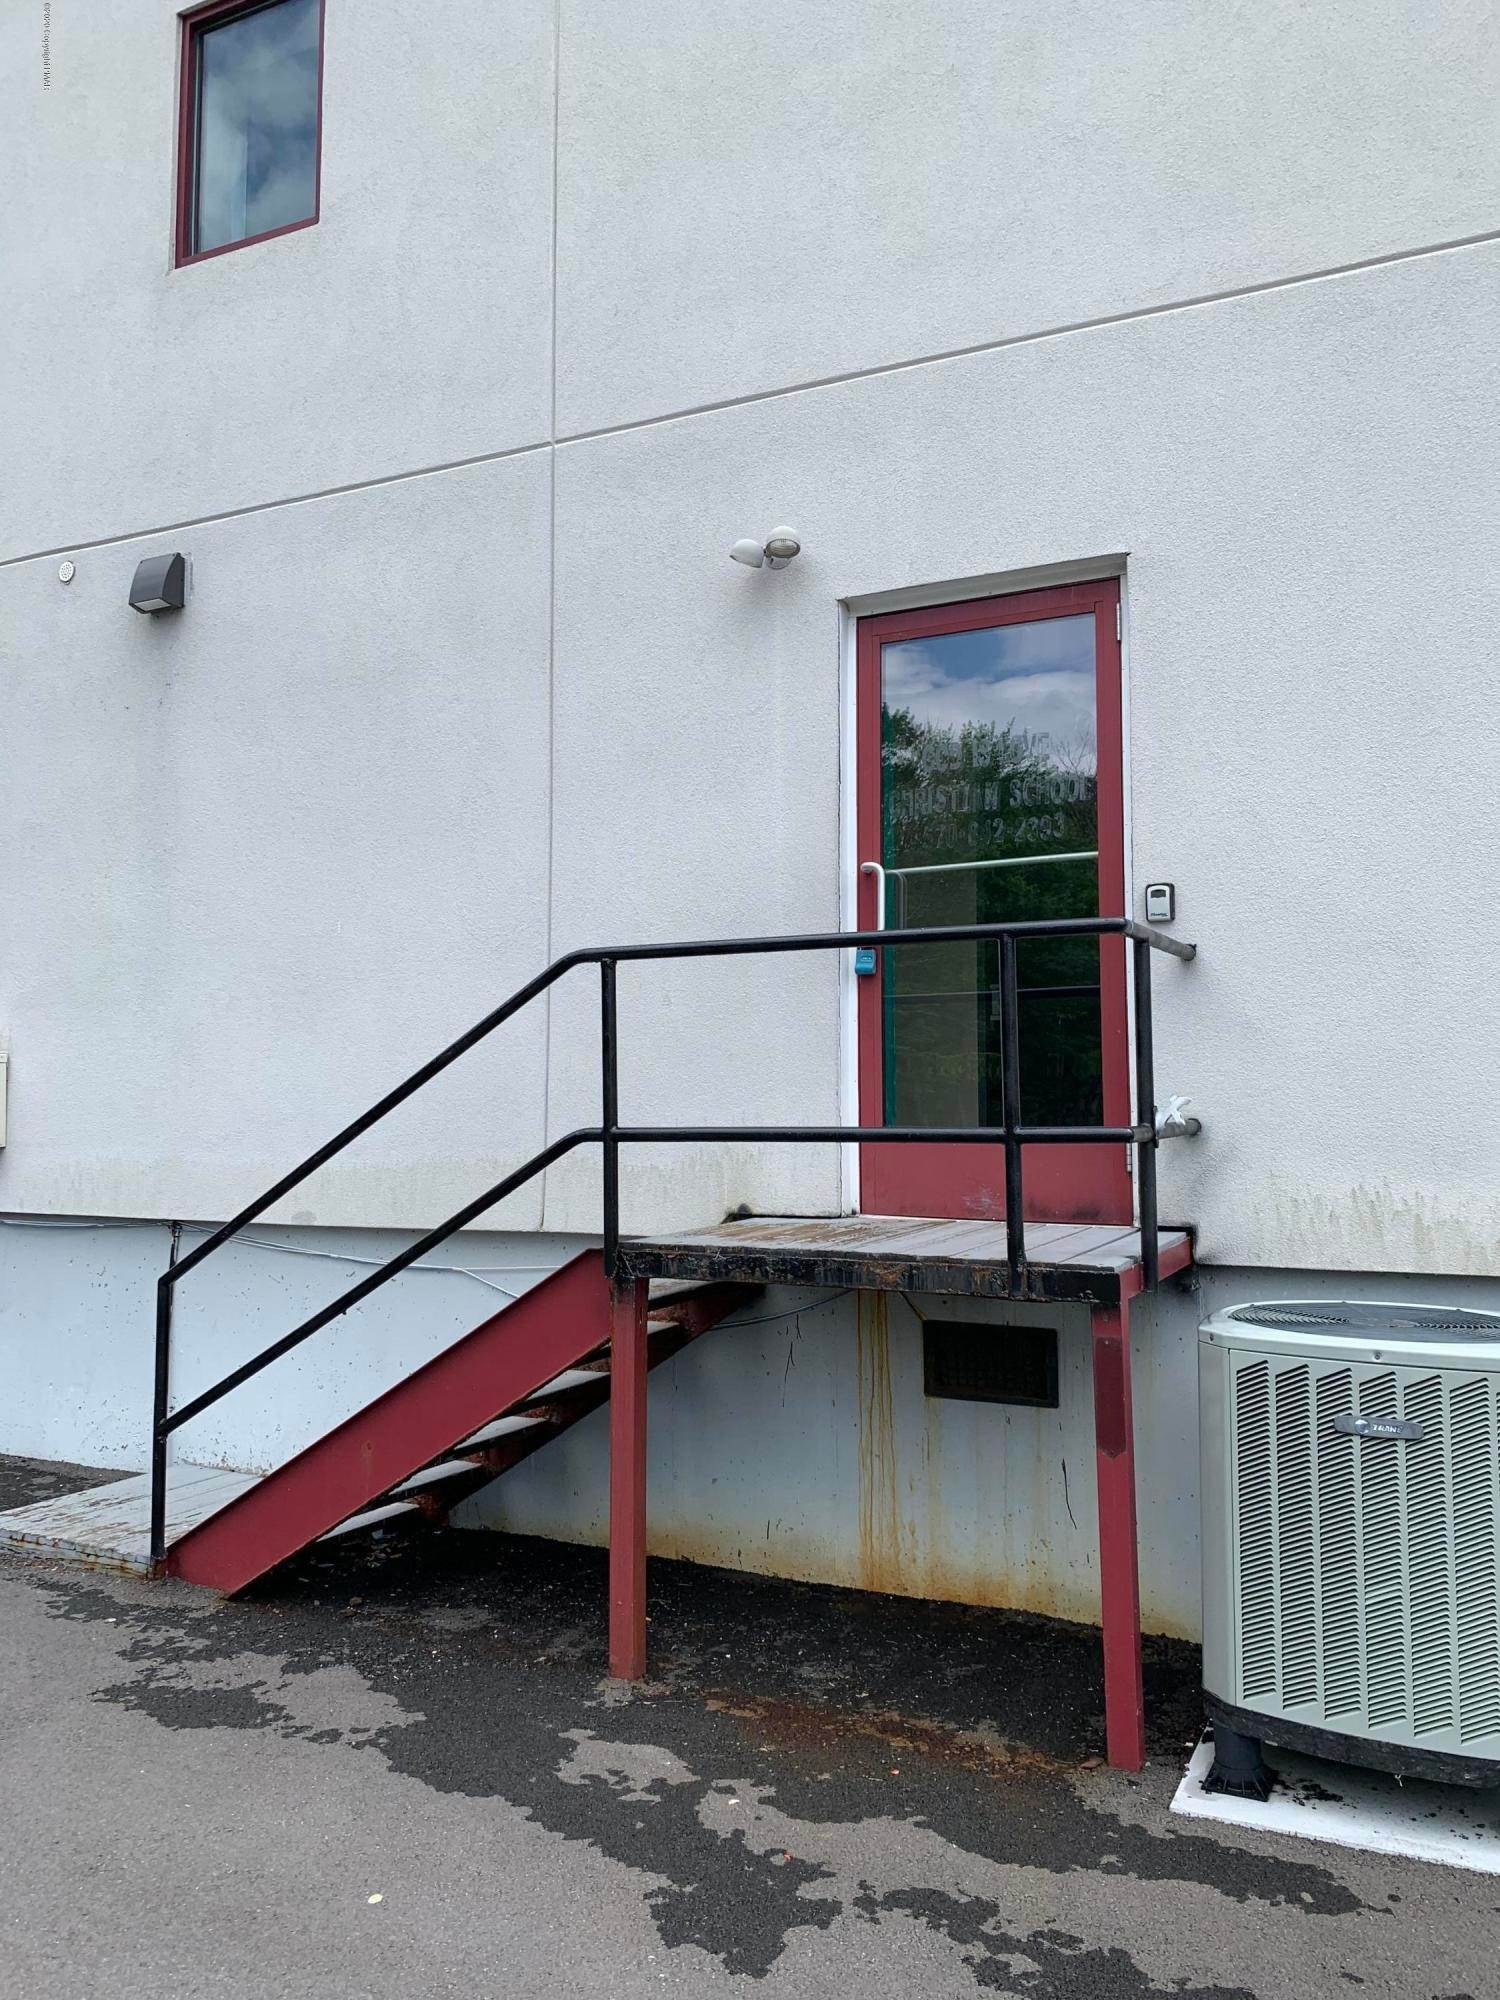 21. Commercial for Sale at 2936 Route 611, School-2 Tannersville, Pennsylvania 18372 United States